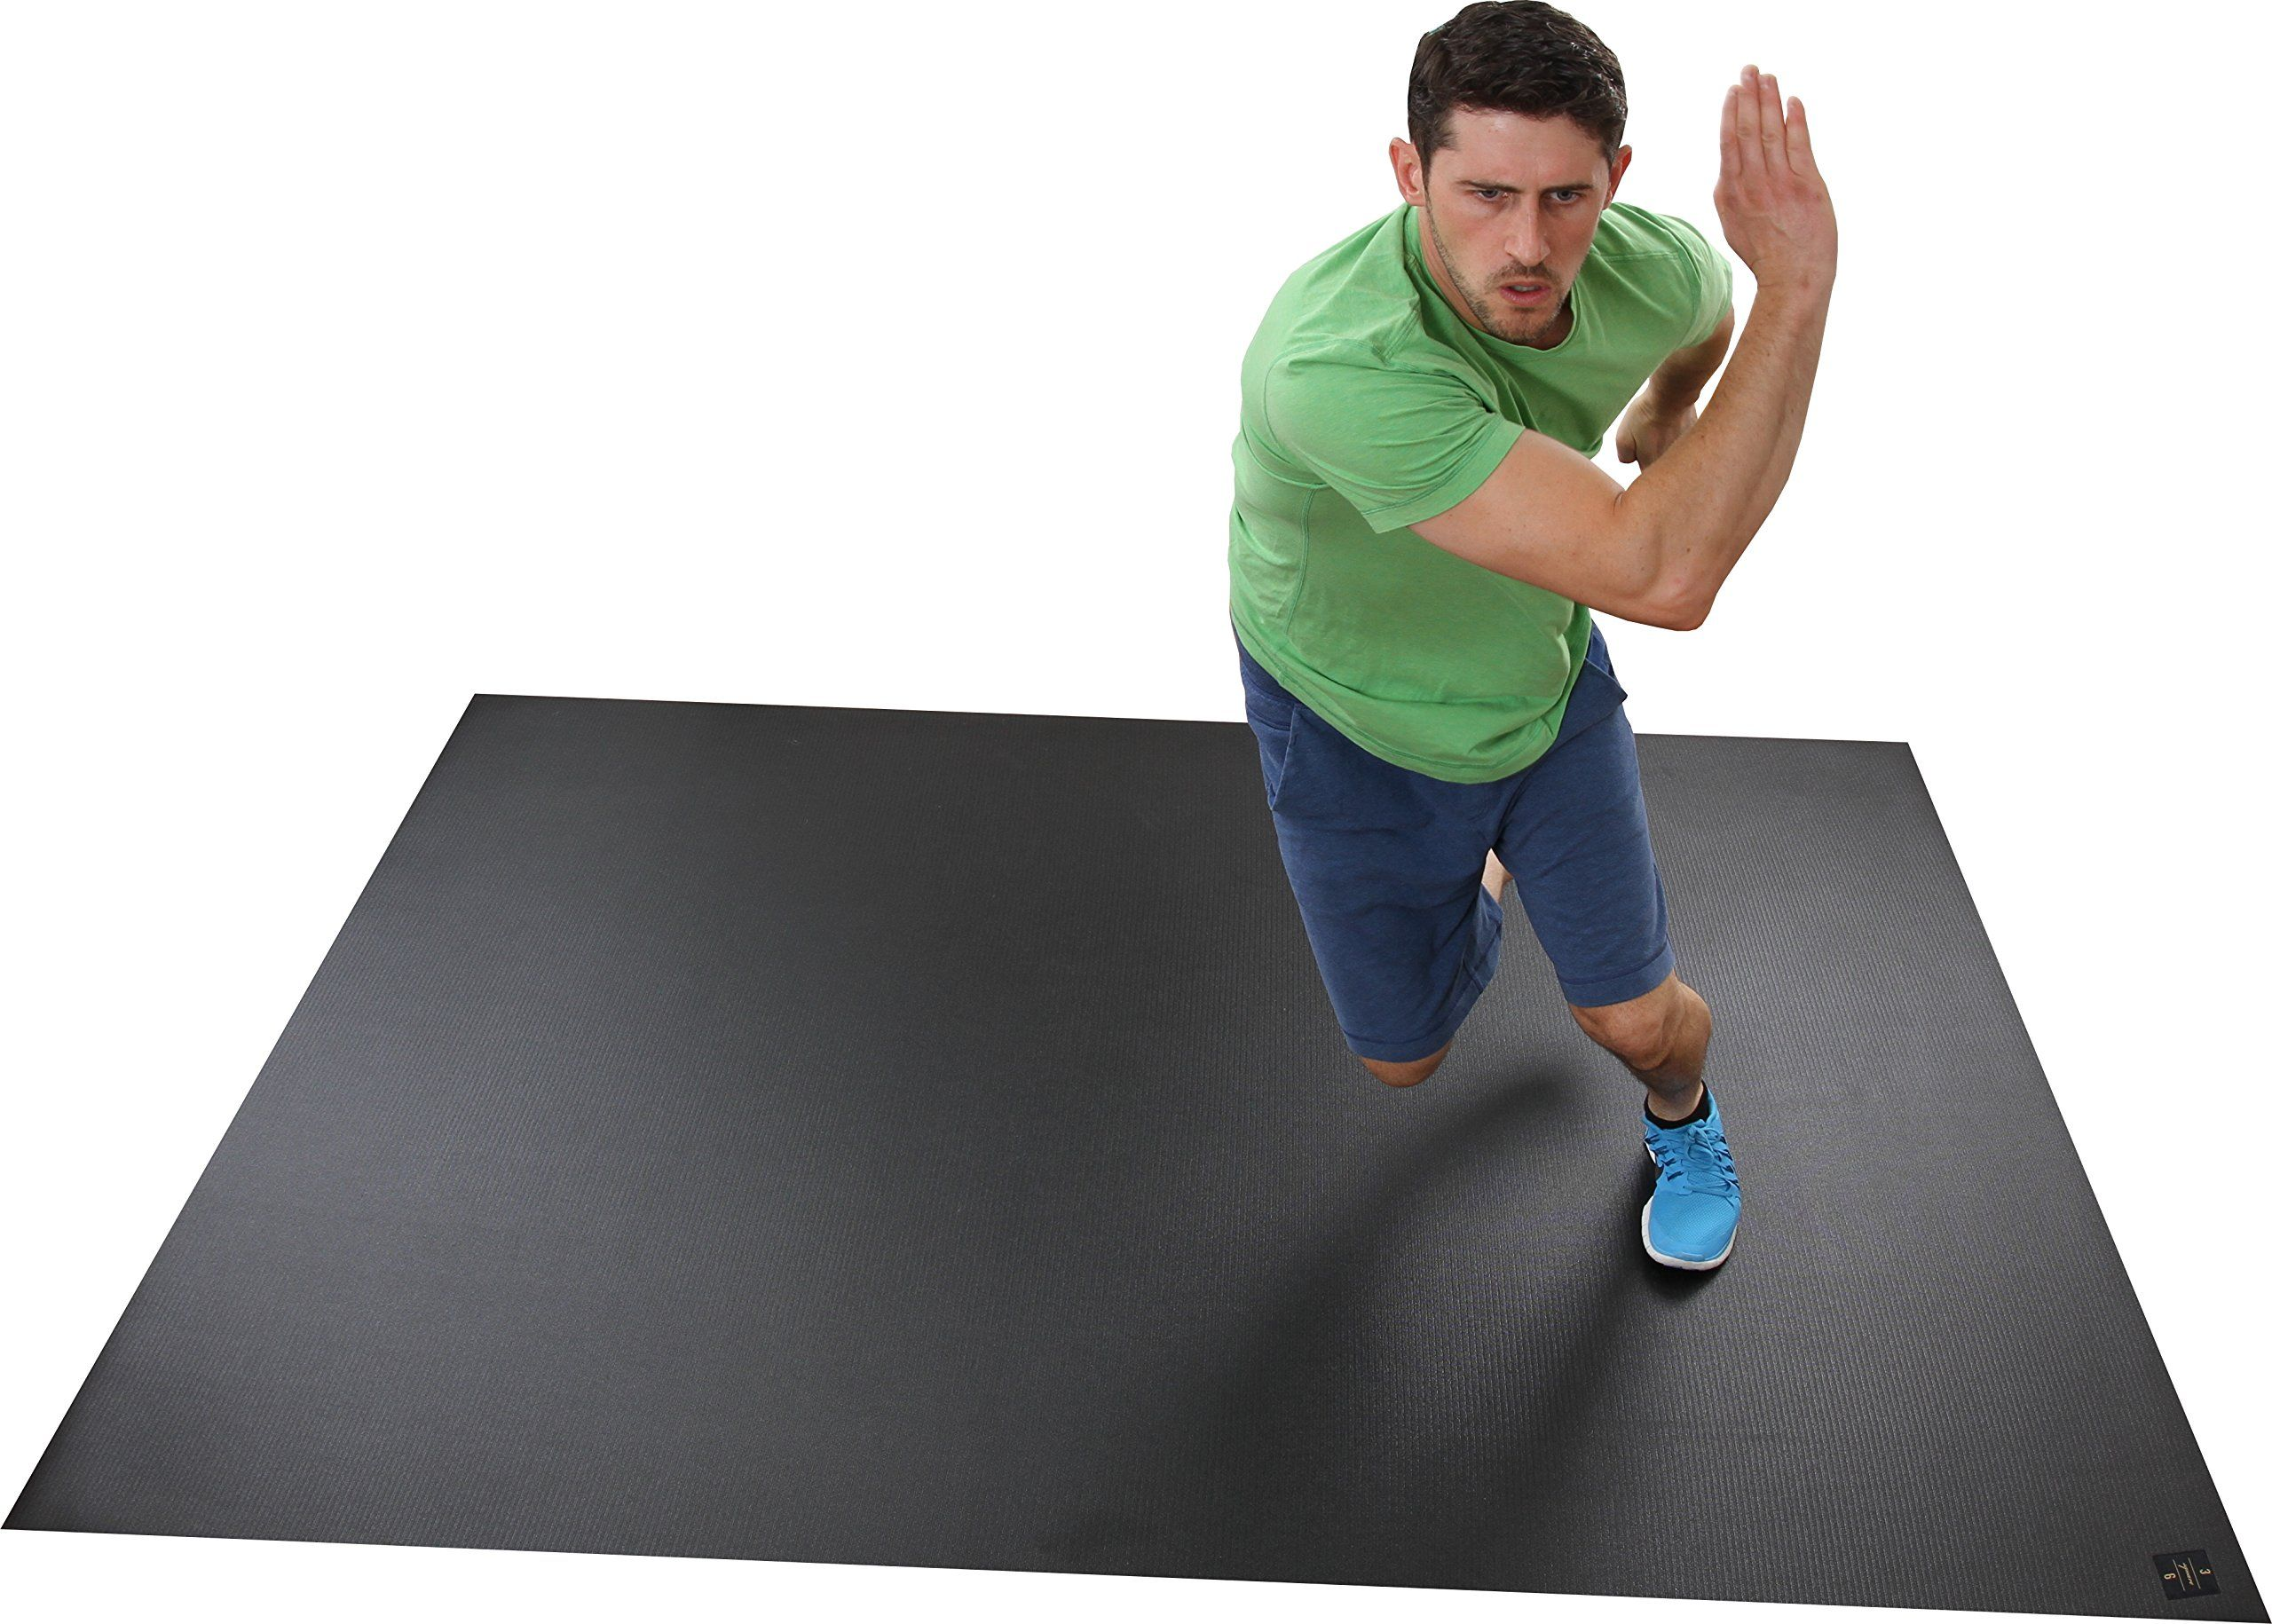 Extra Large Exercise Mat X NEW MATERIAL Thicker Odorless Fitness For Home Gyms Or Living Room Workouts Ideal Cardiovascular